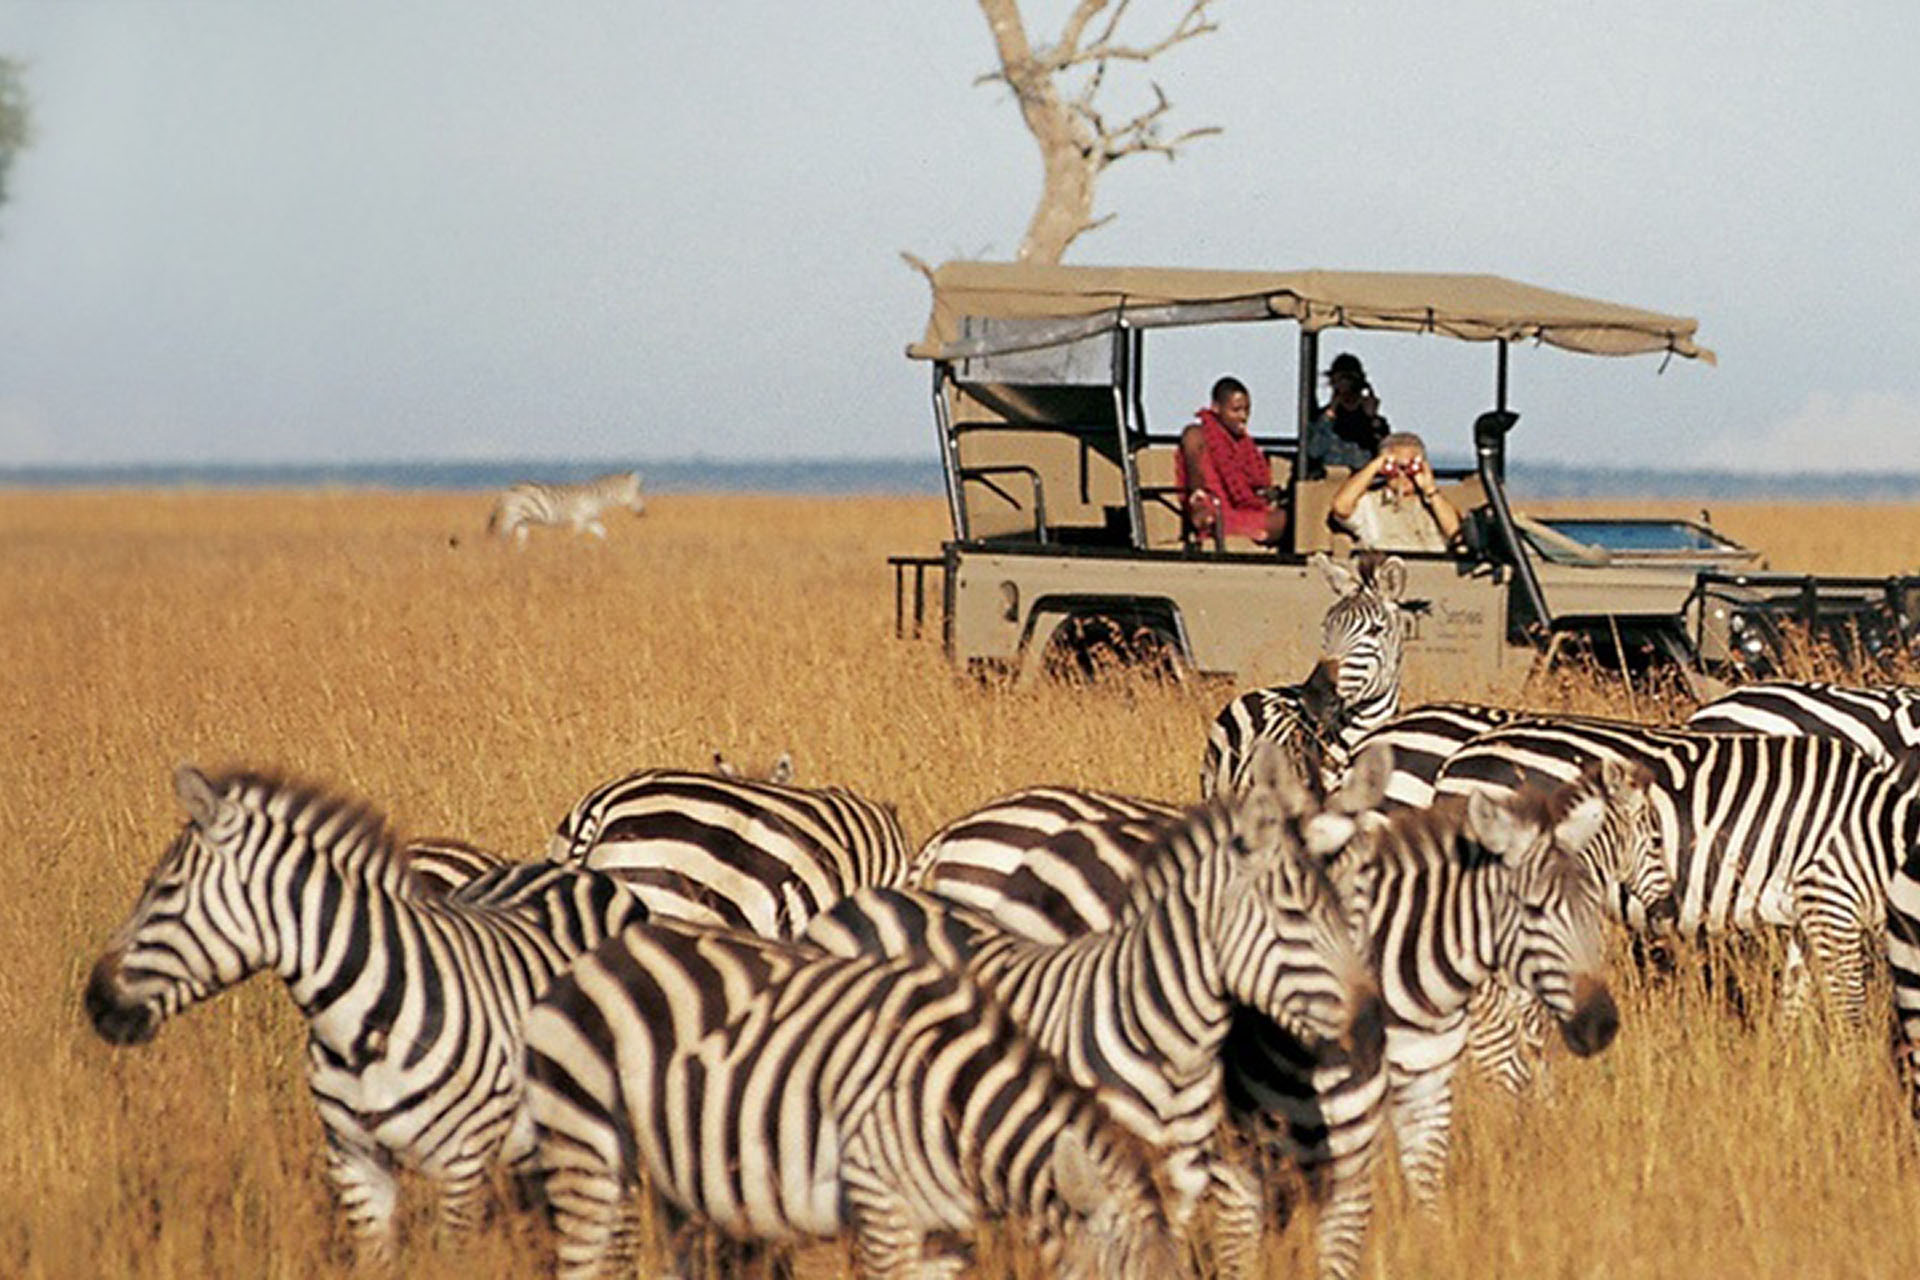 safari-itineraries-maasai-wanderings-safari-itineraries-signature-photo-safaris-africa-zebra